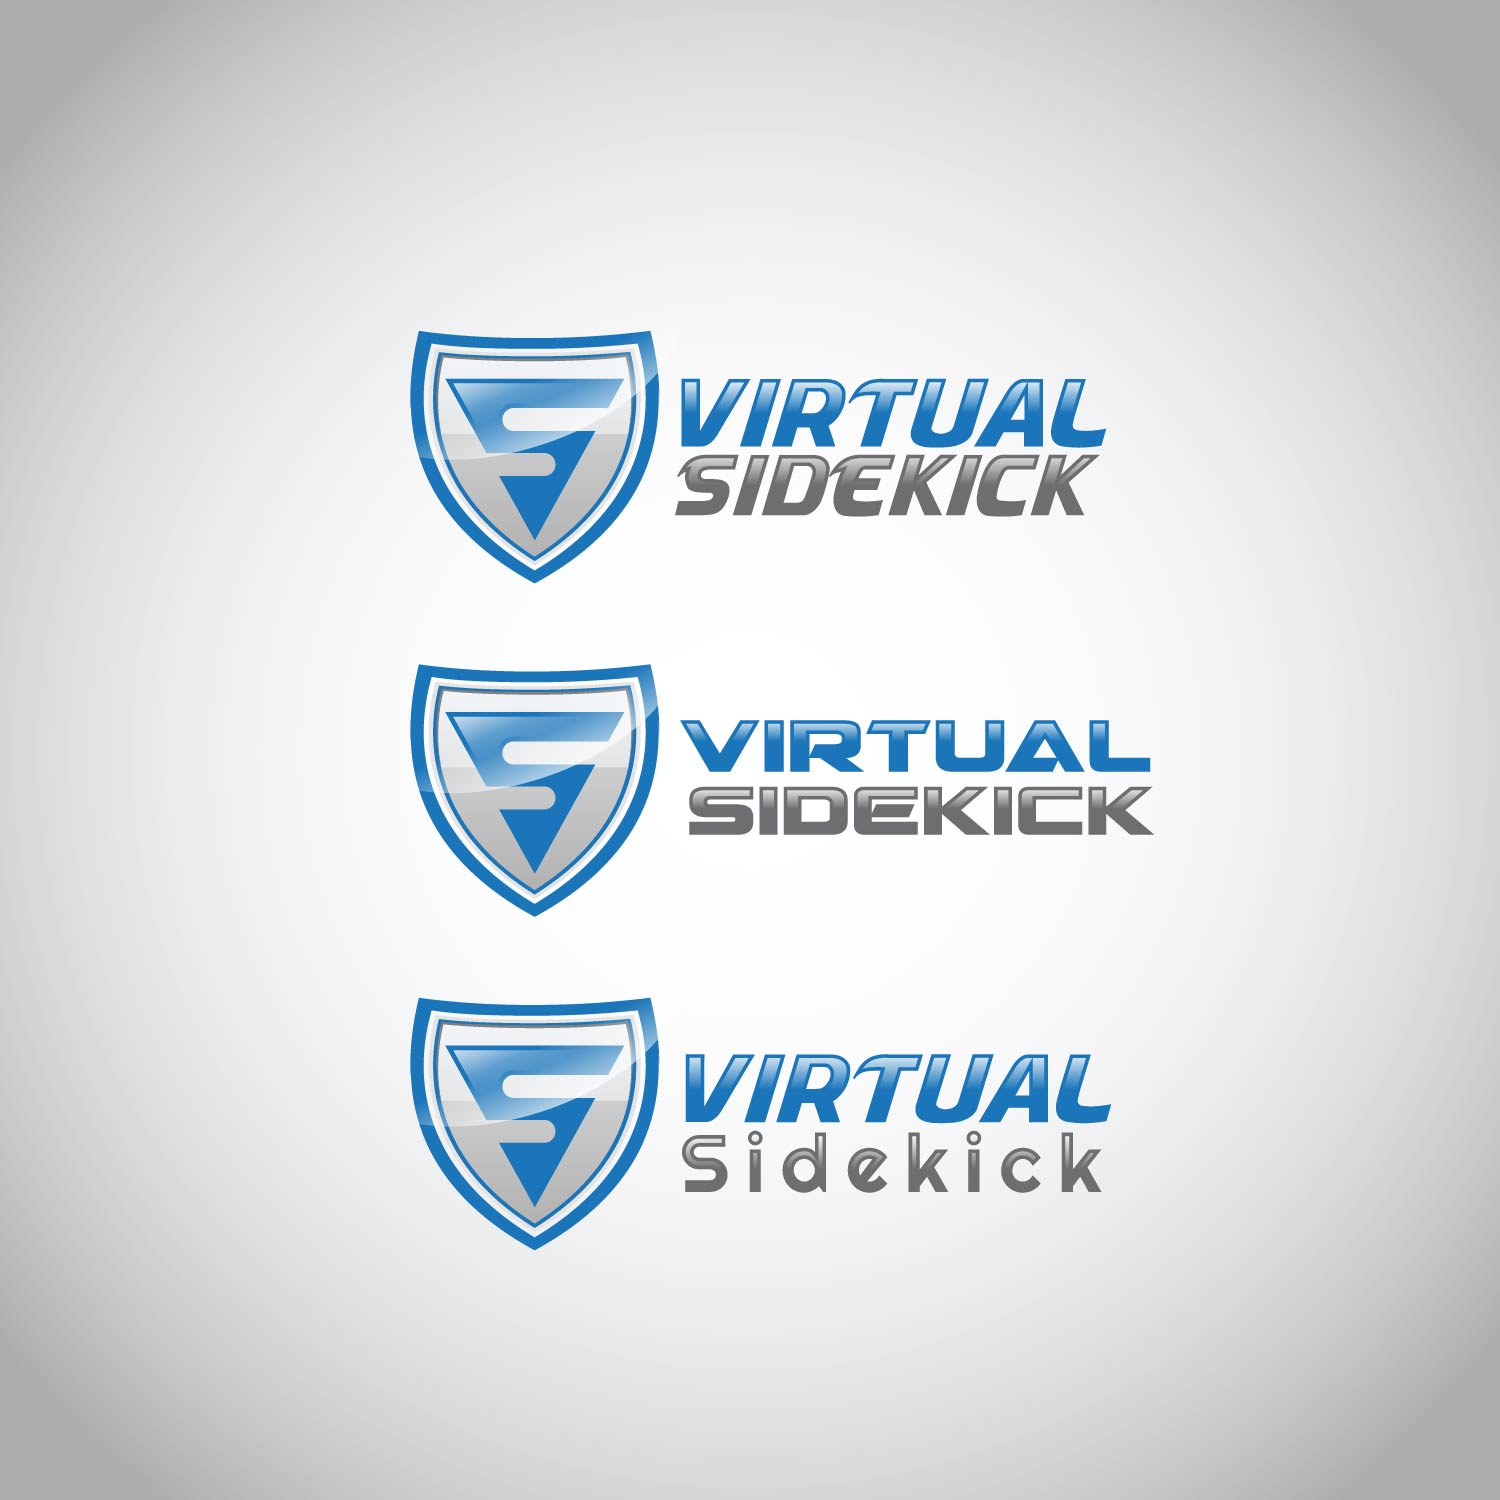 Logo Design by lagalag - Entry No. 92 in the Logo Design Contest Fun Logo Design for Virtual Sidekick.